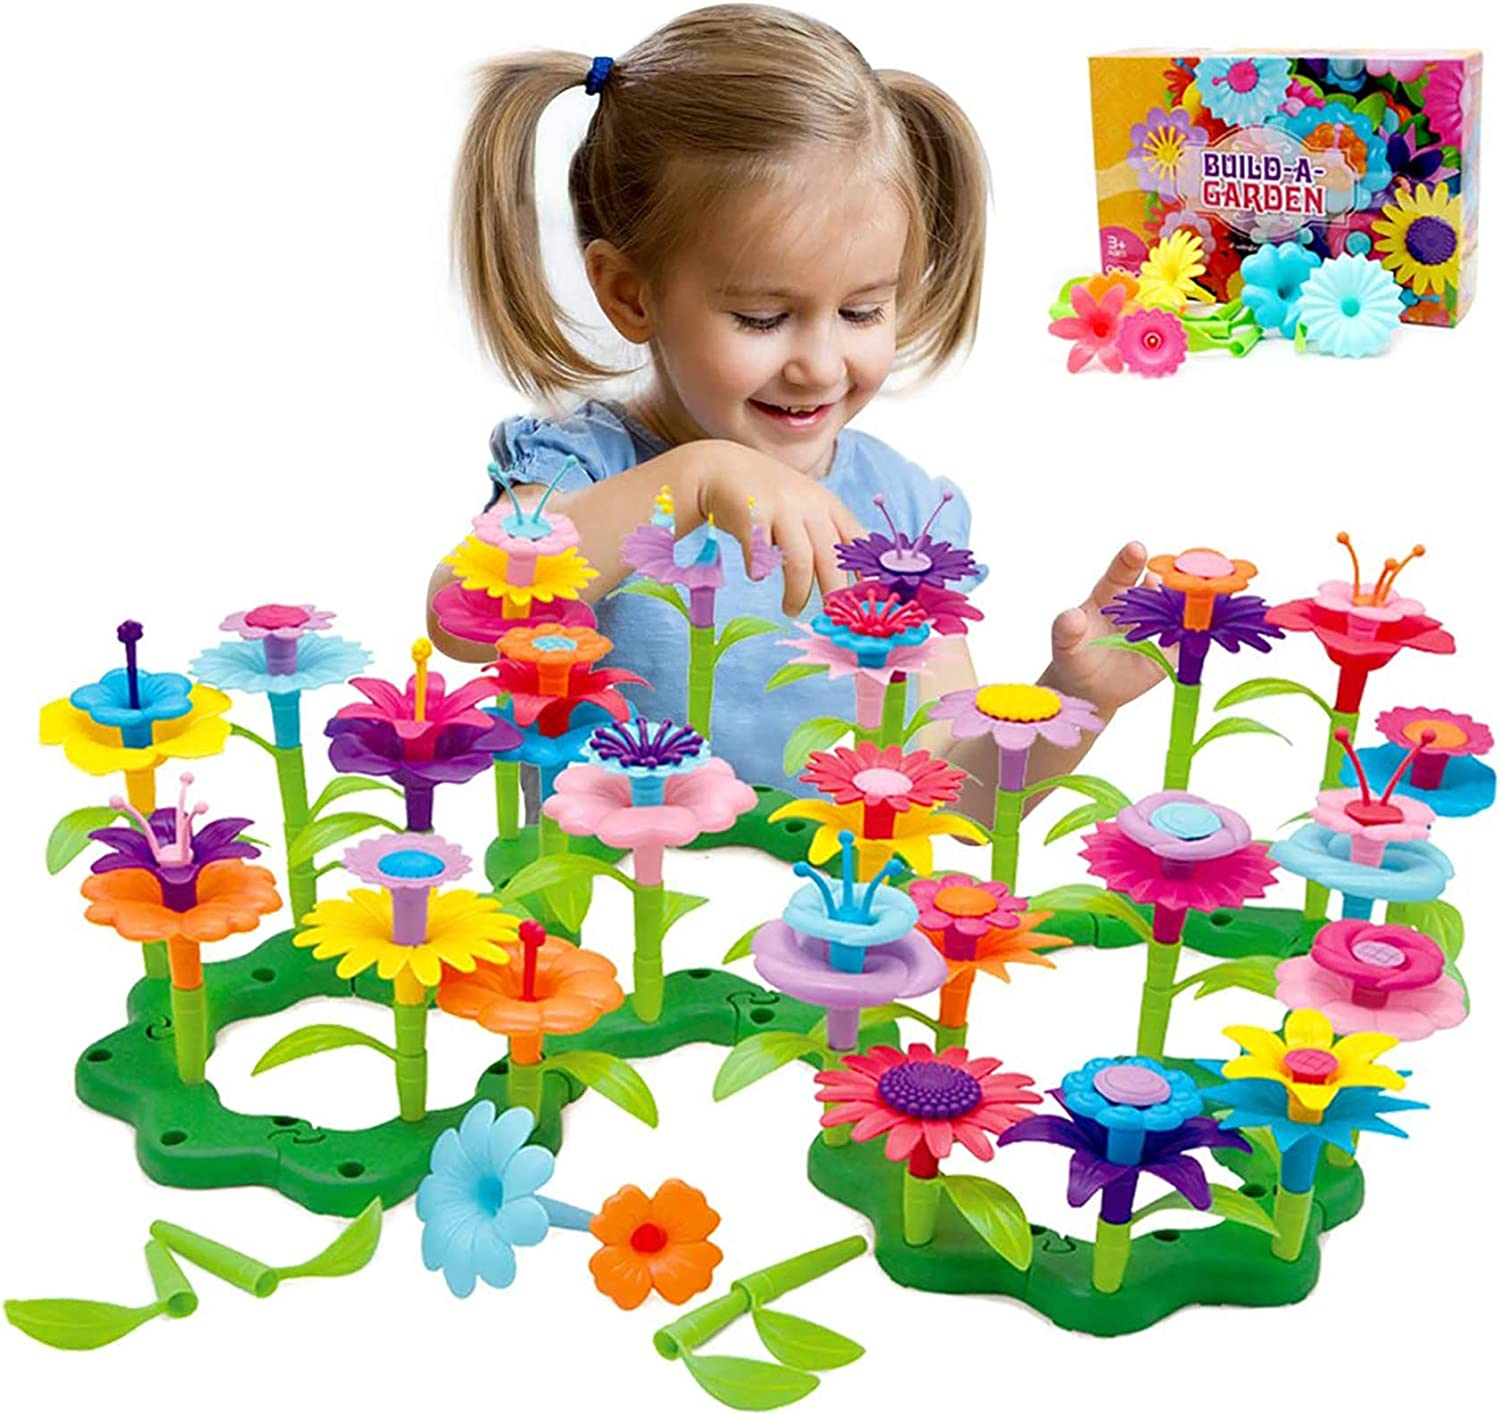 Barchrons Flower Garden Building STEM Toys Gardening Pretend Gift for Girls Kids Toy Educational Activity for Preschool Children Age 3 4 5 6 7 Year Old - Stacking Game for Toddlers playset (109pcs)